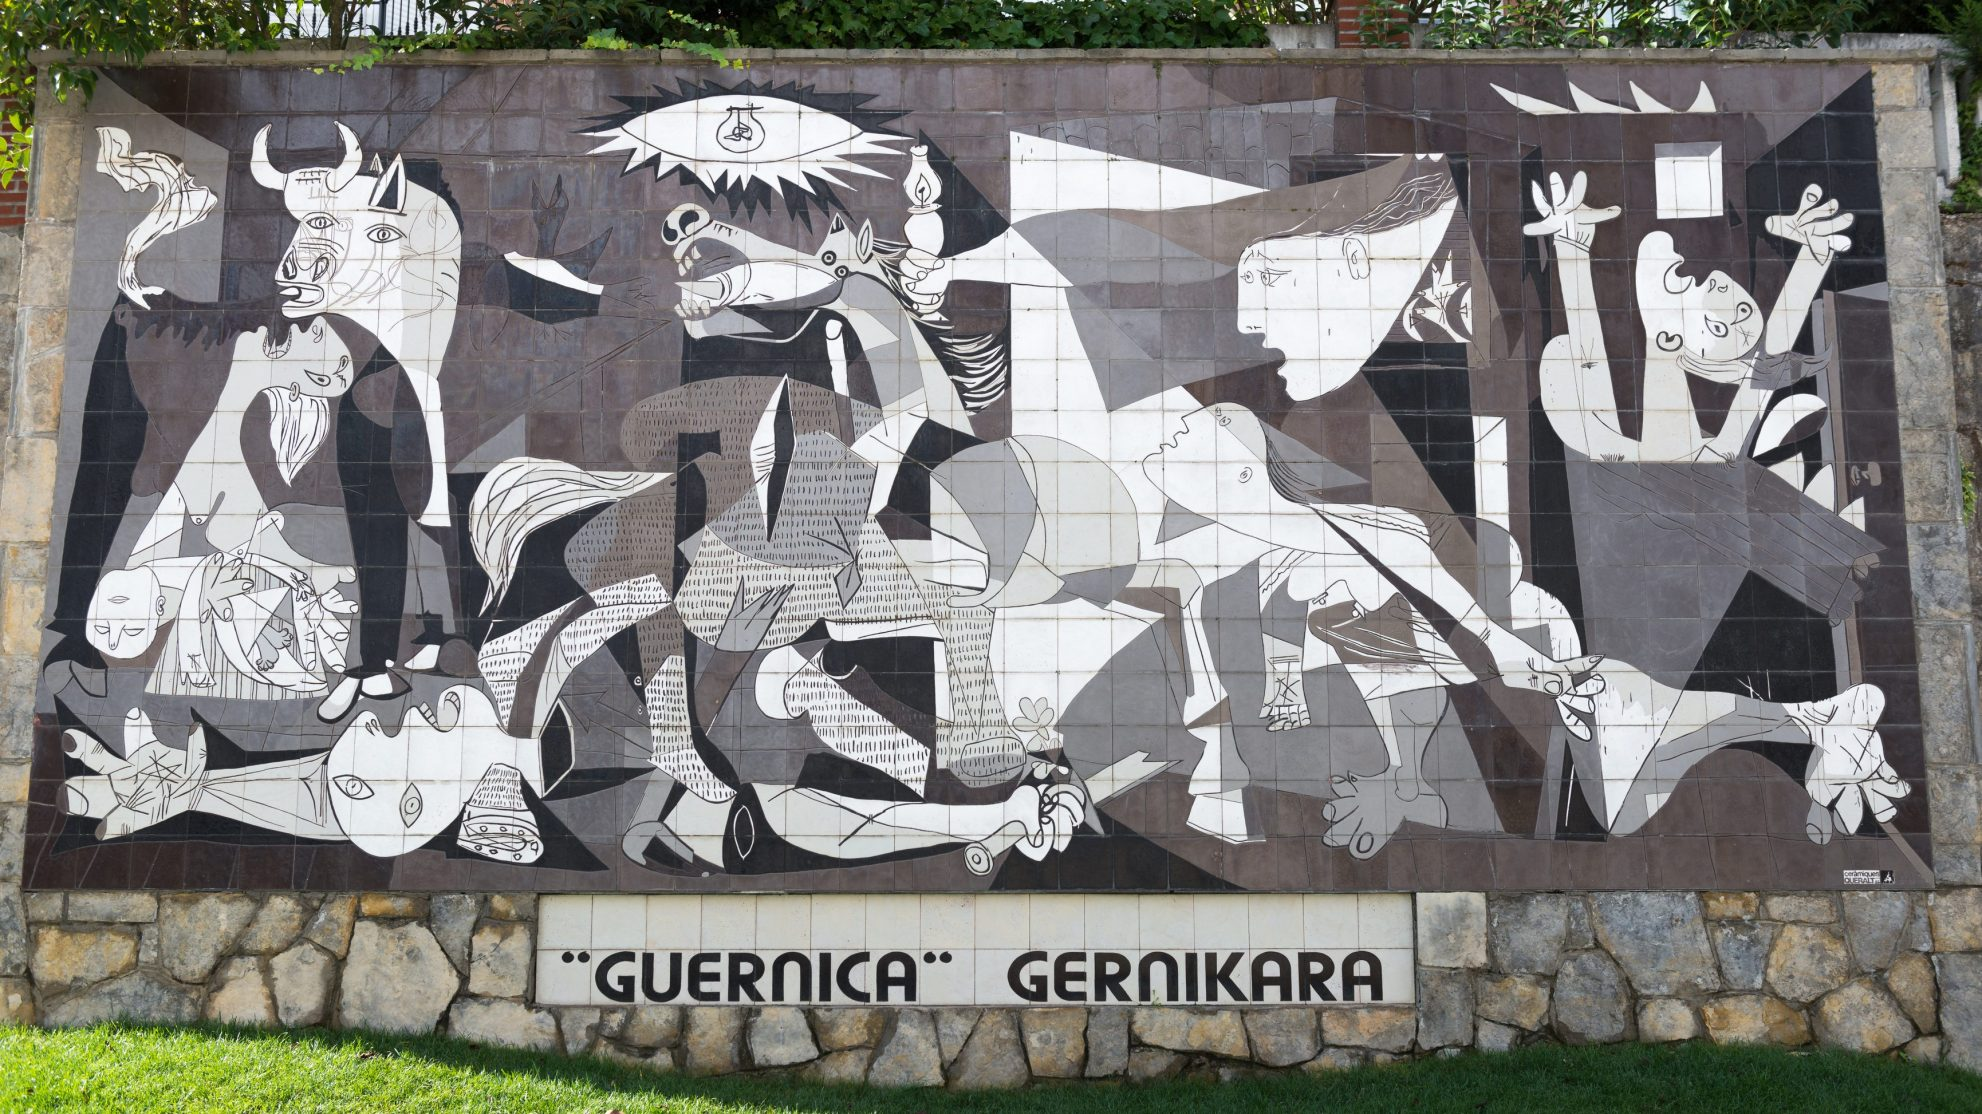 Lessons from guernica what art can teach us about leadership